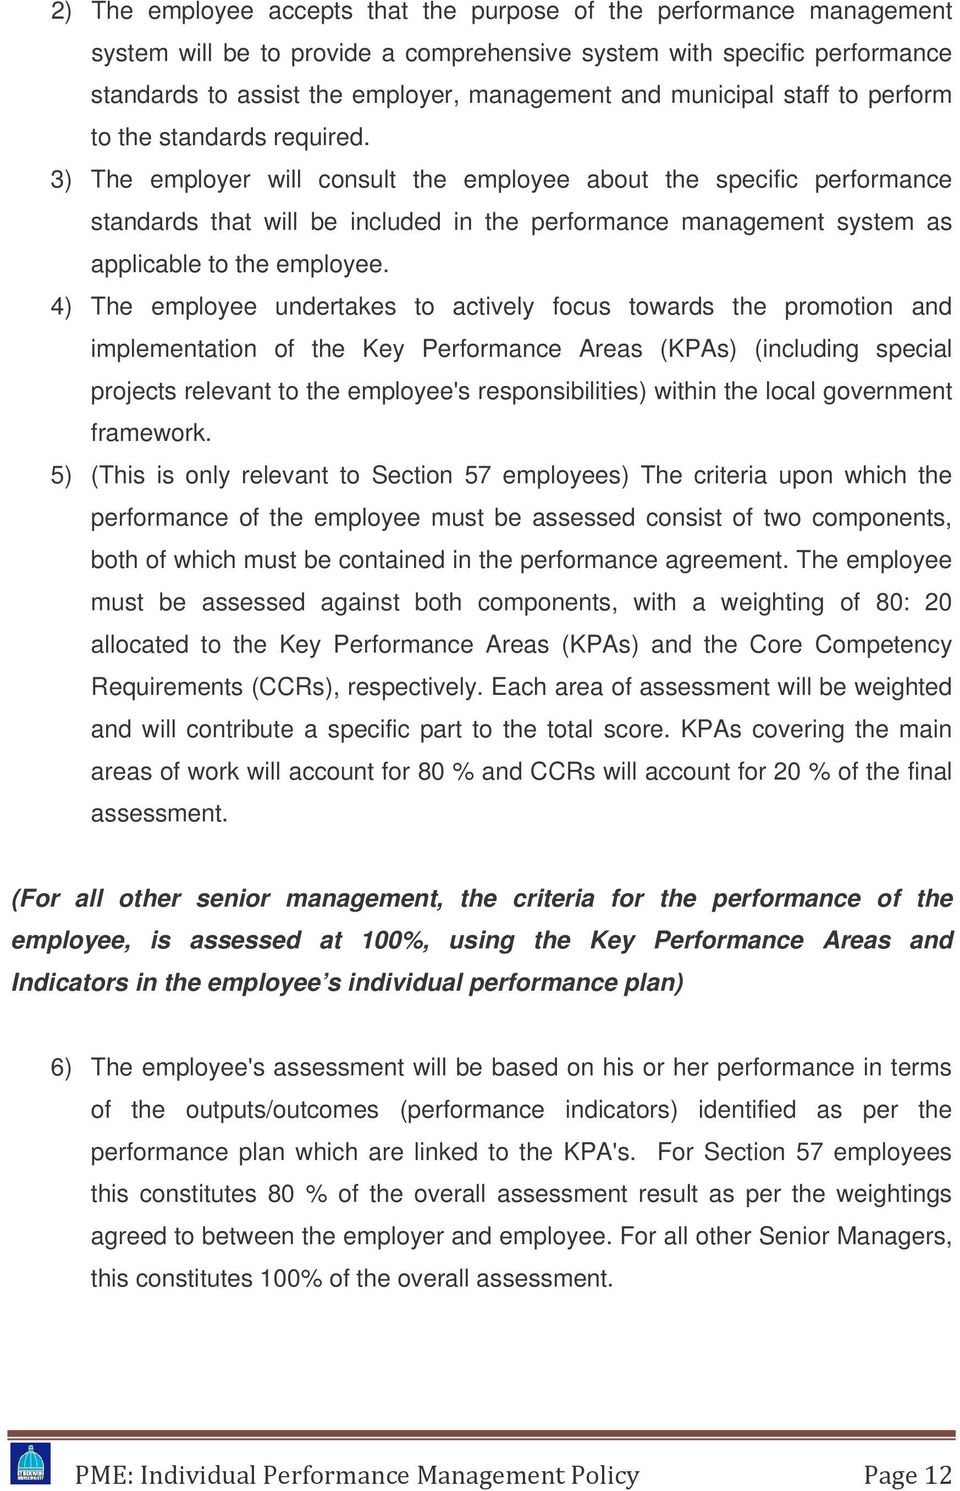 3) The employer will consult the employee about the specific performance standards that will be included in the performance management system as applicable to the employee.